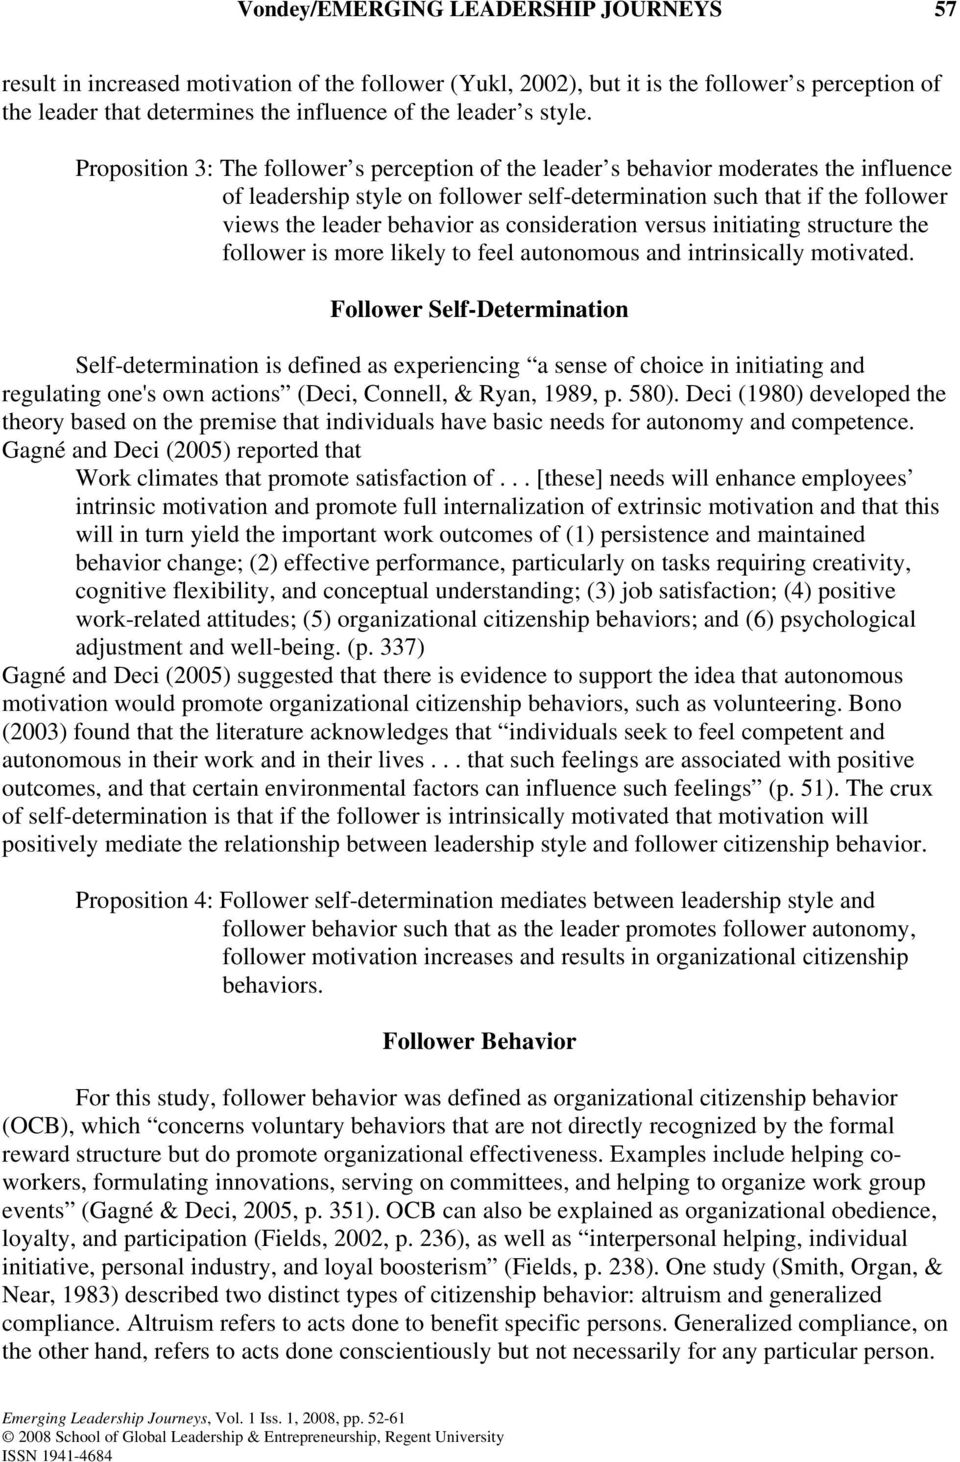 Proposition 3: The follower s perception of the leader s behavior moderates the influence of leadership style on follower self-determination such that if the follower views the leader behavior as